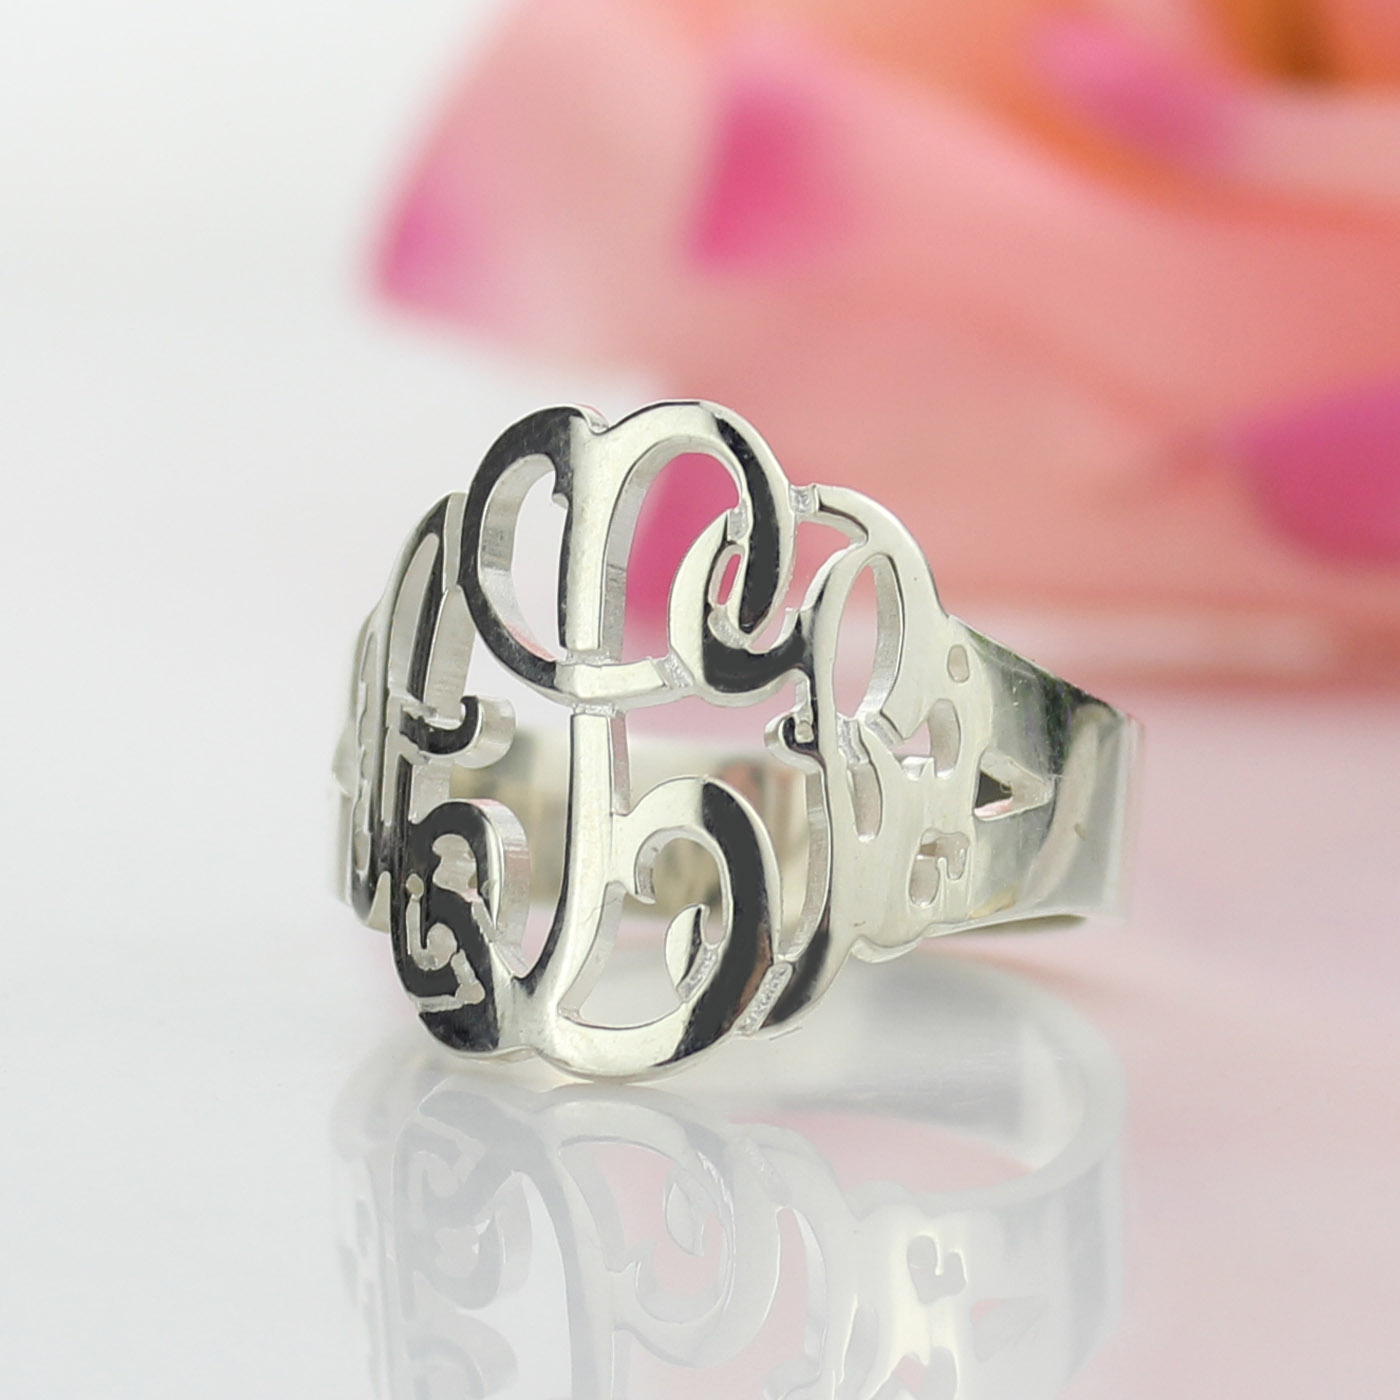 Personalized Hand Drawing Monogrammed Ring Silver